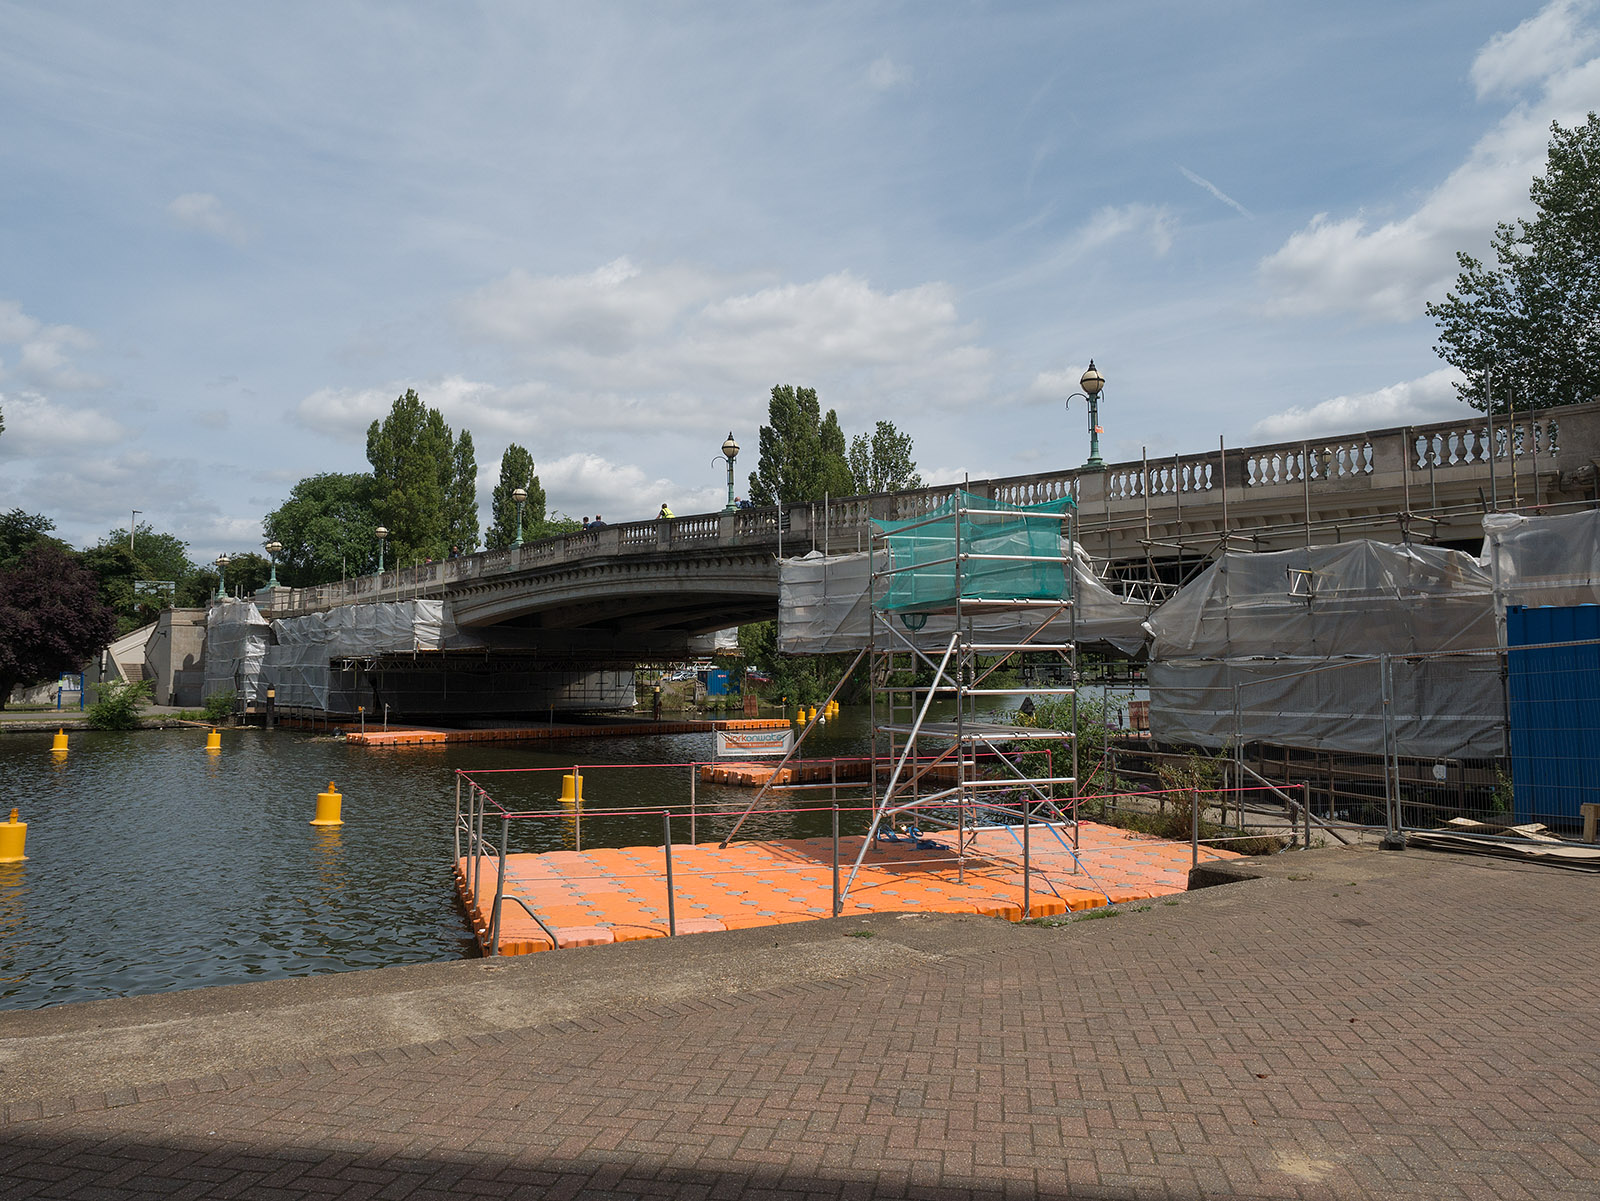 The start - the Bridge at Reading, still out of bounds during works